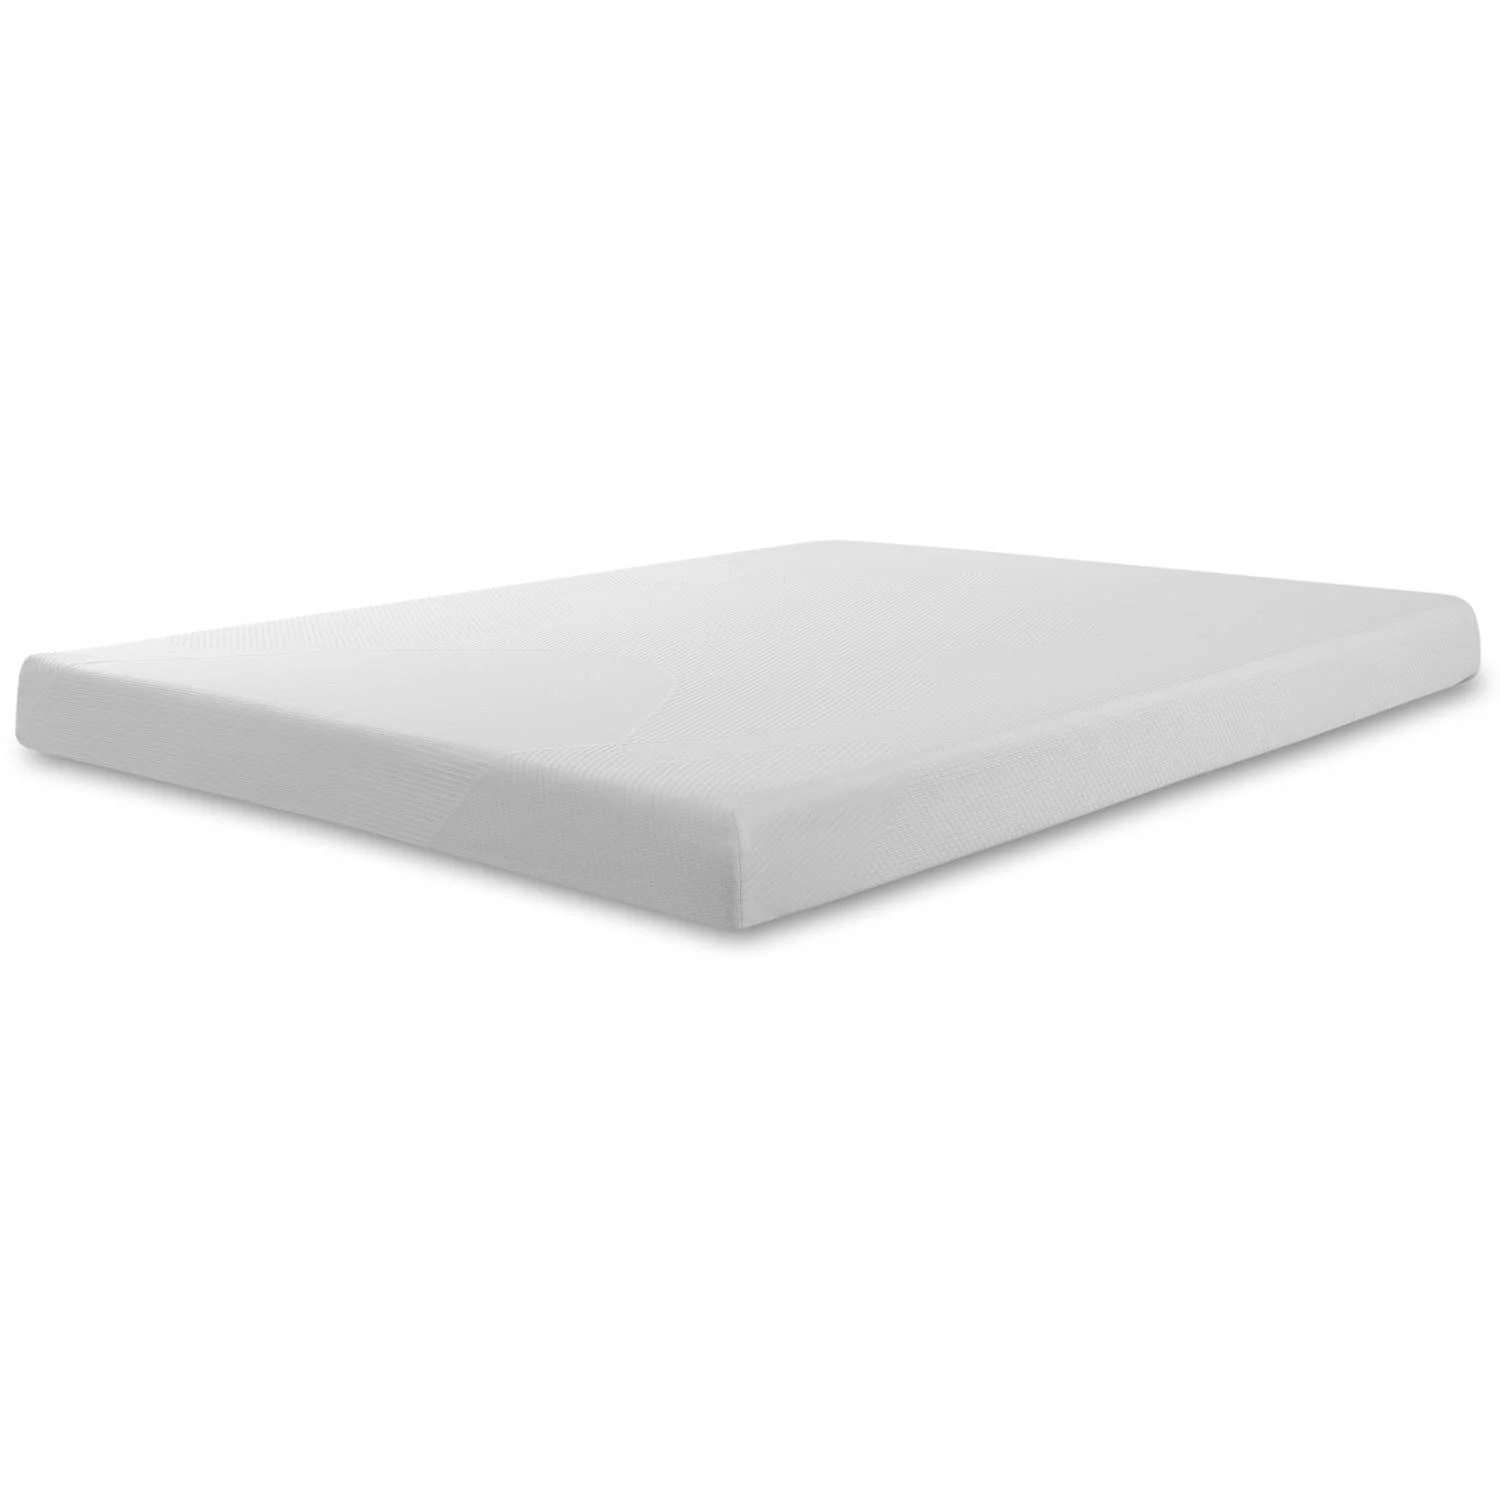 Thin Mattress Topper Spa Sensation 6 39 39 Memory Foam Mattress Xl Twin Full Queen